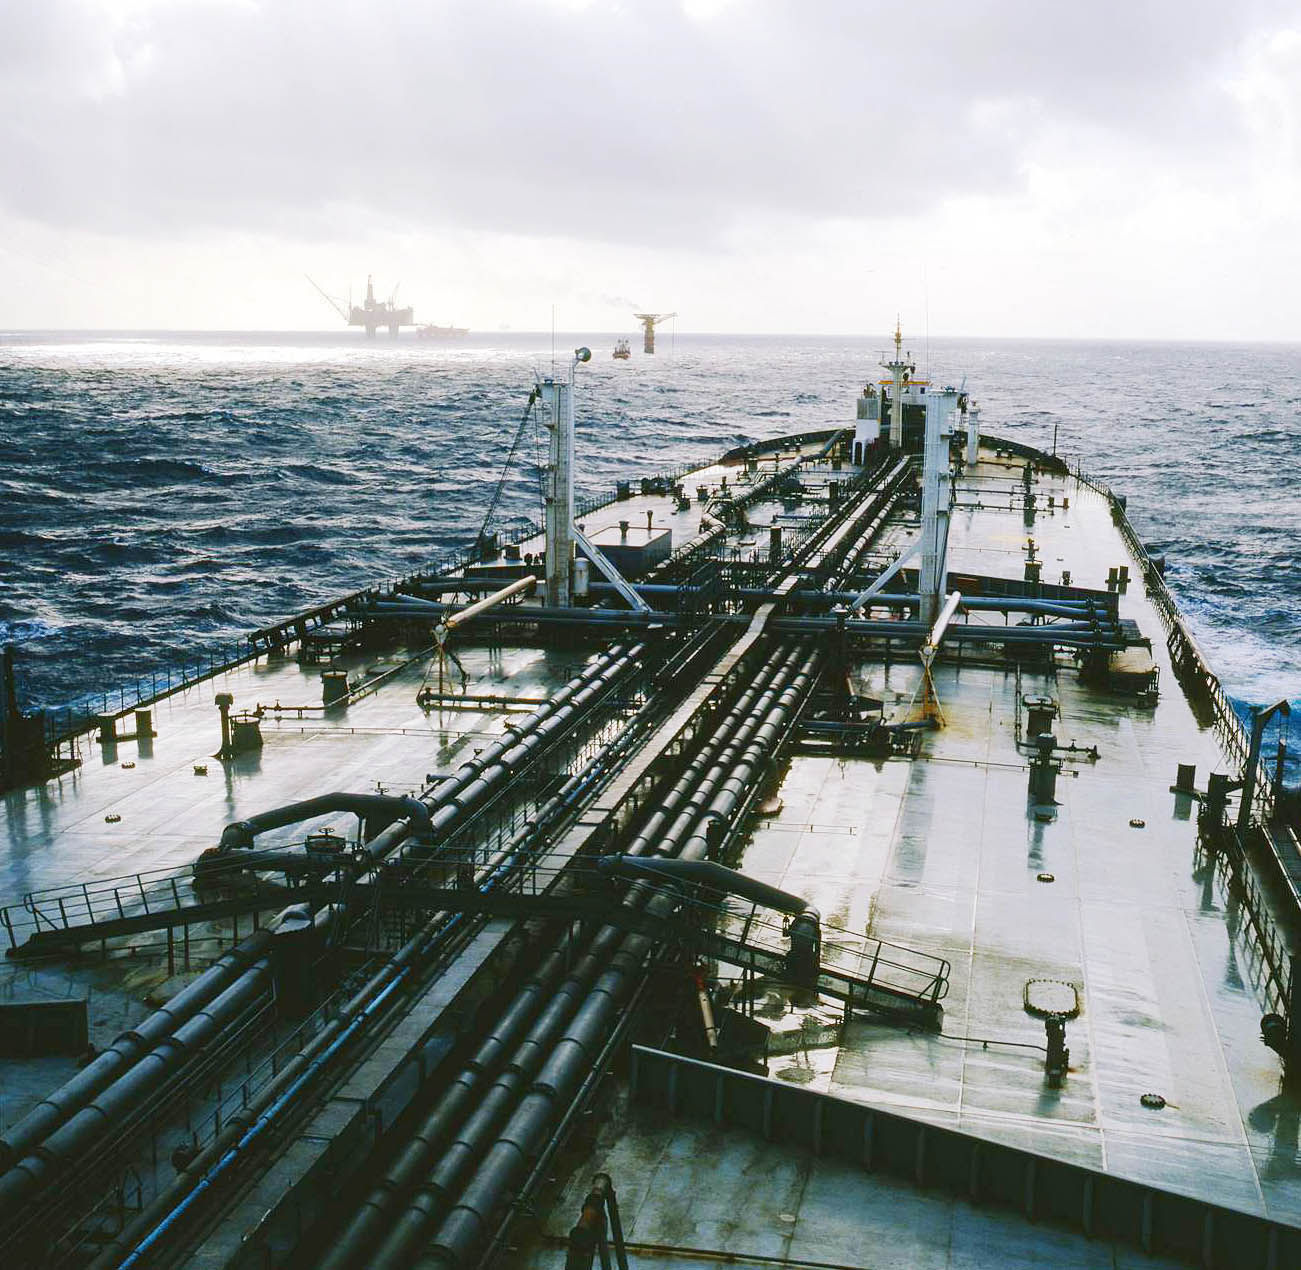 North Sea 1979, Wilnora with oilrig in horizon